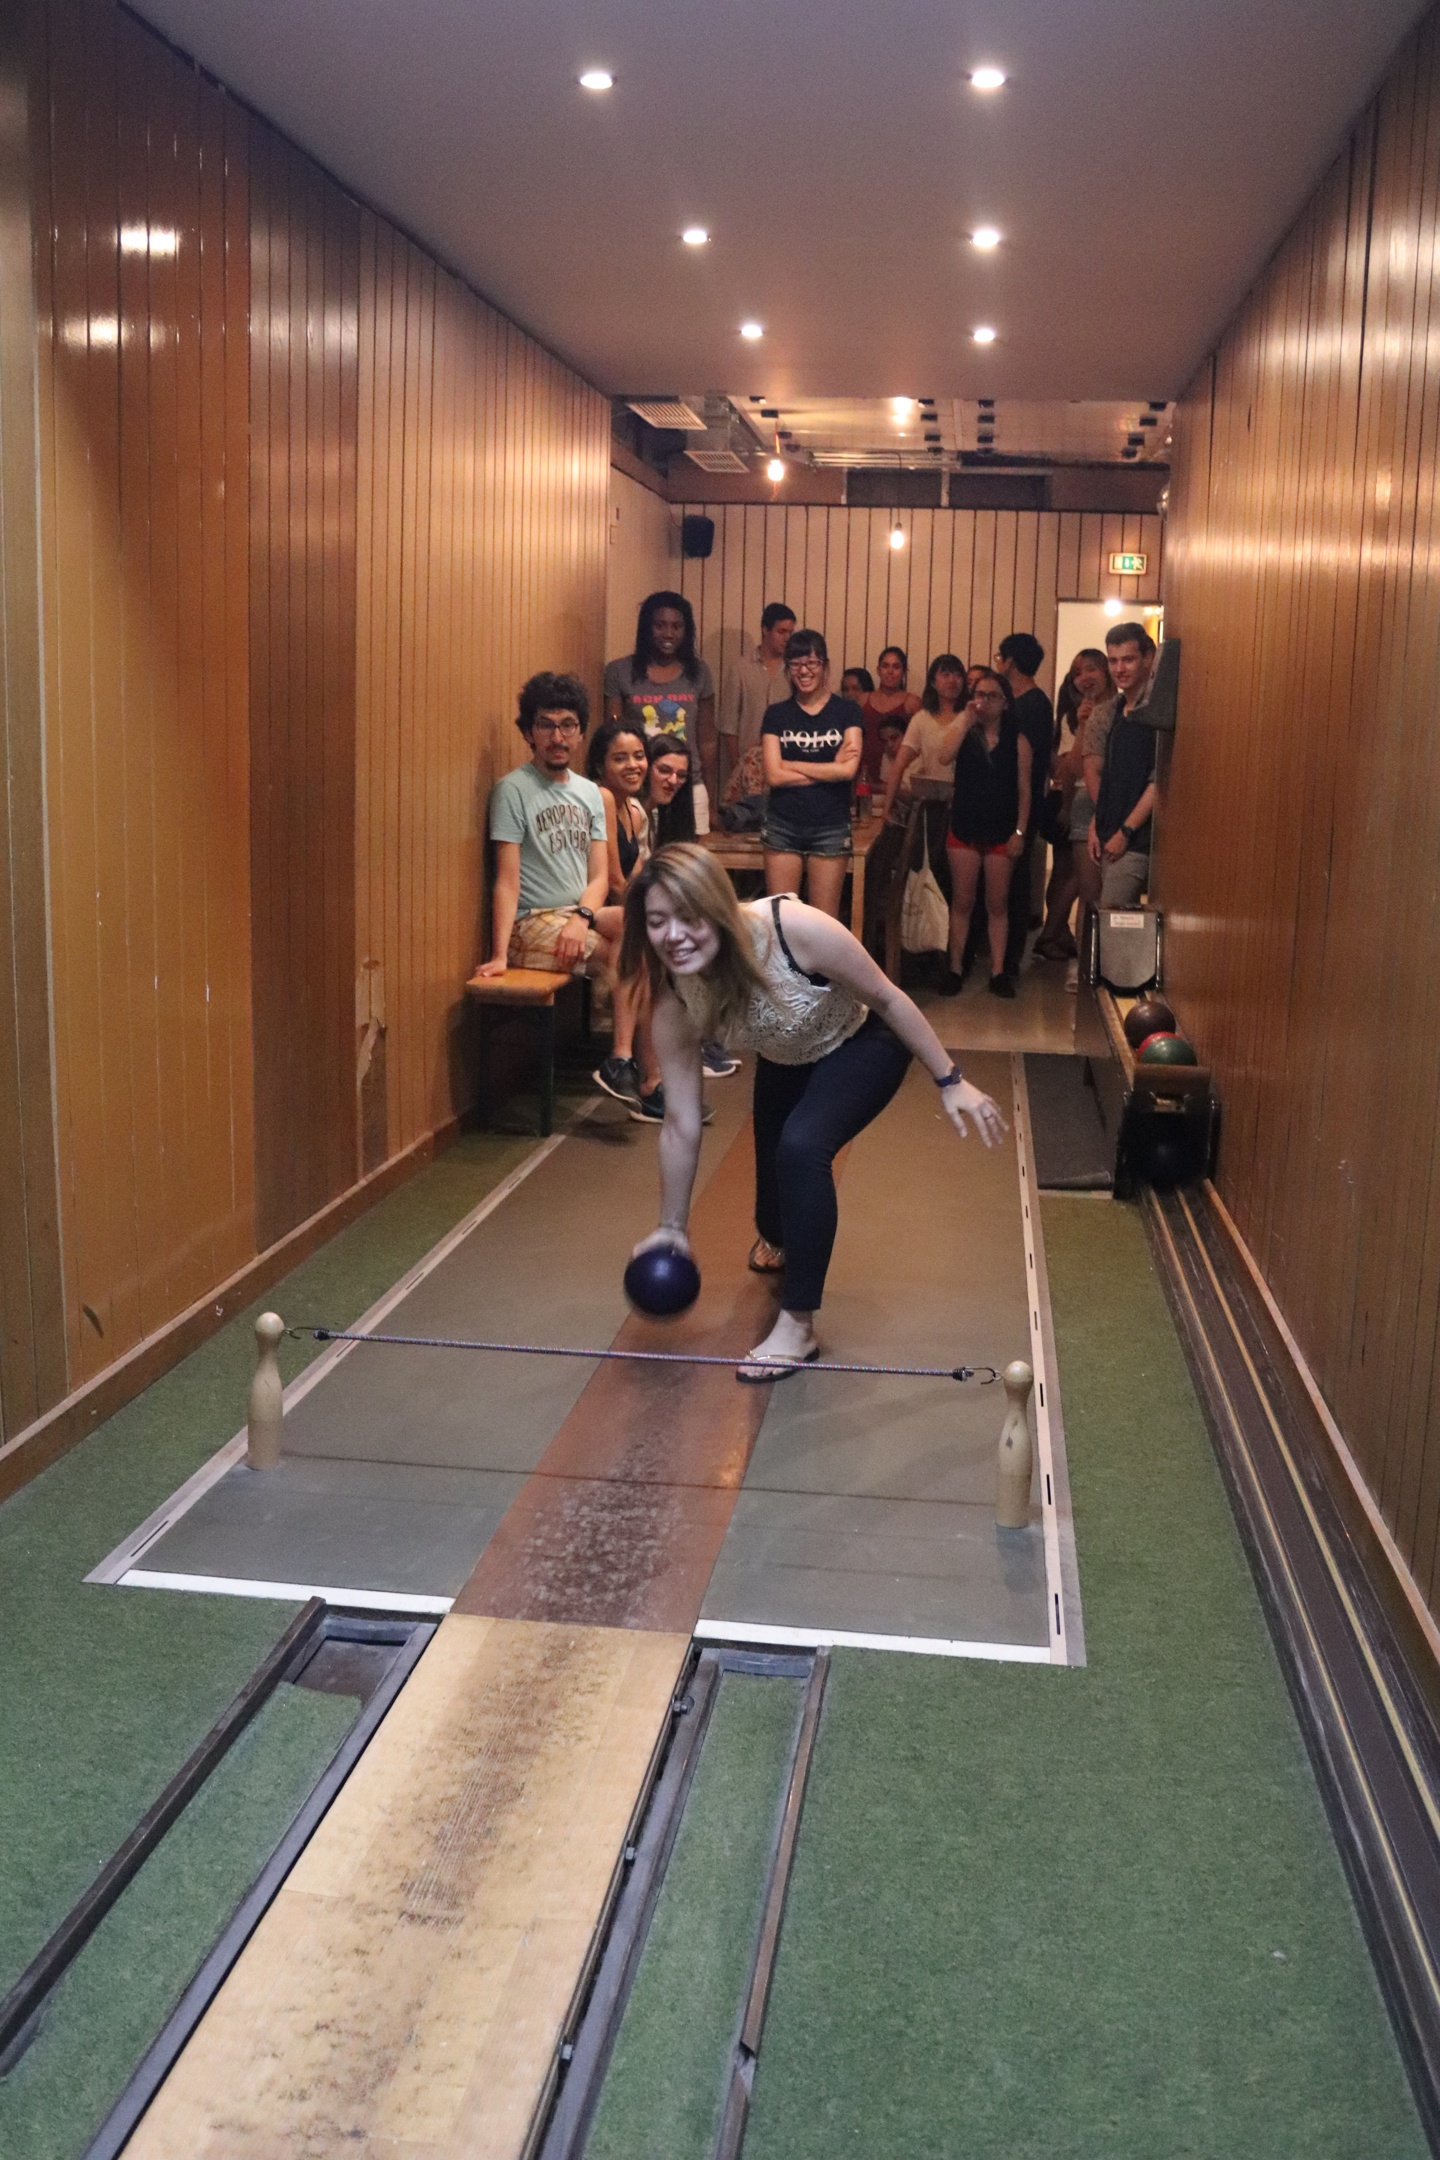 Front view of a student who is about to bowl, with many other students sitting and standing in the background.